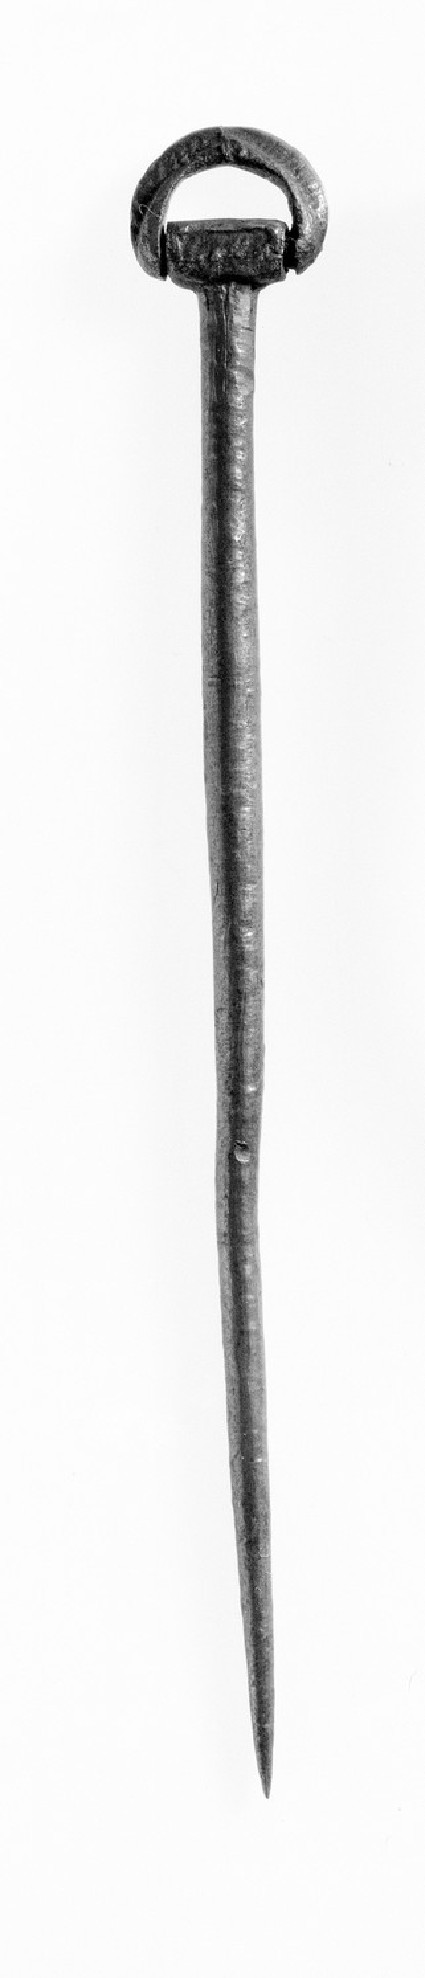 Ring-headed pin